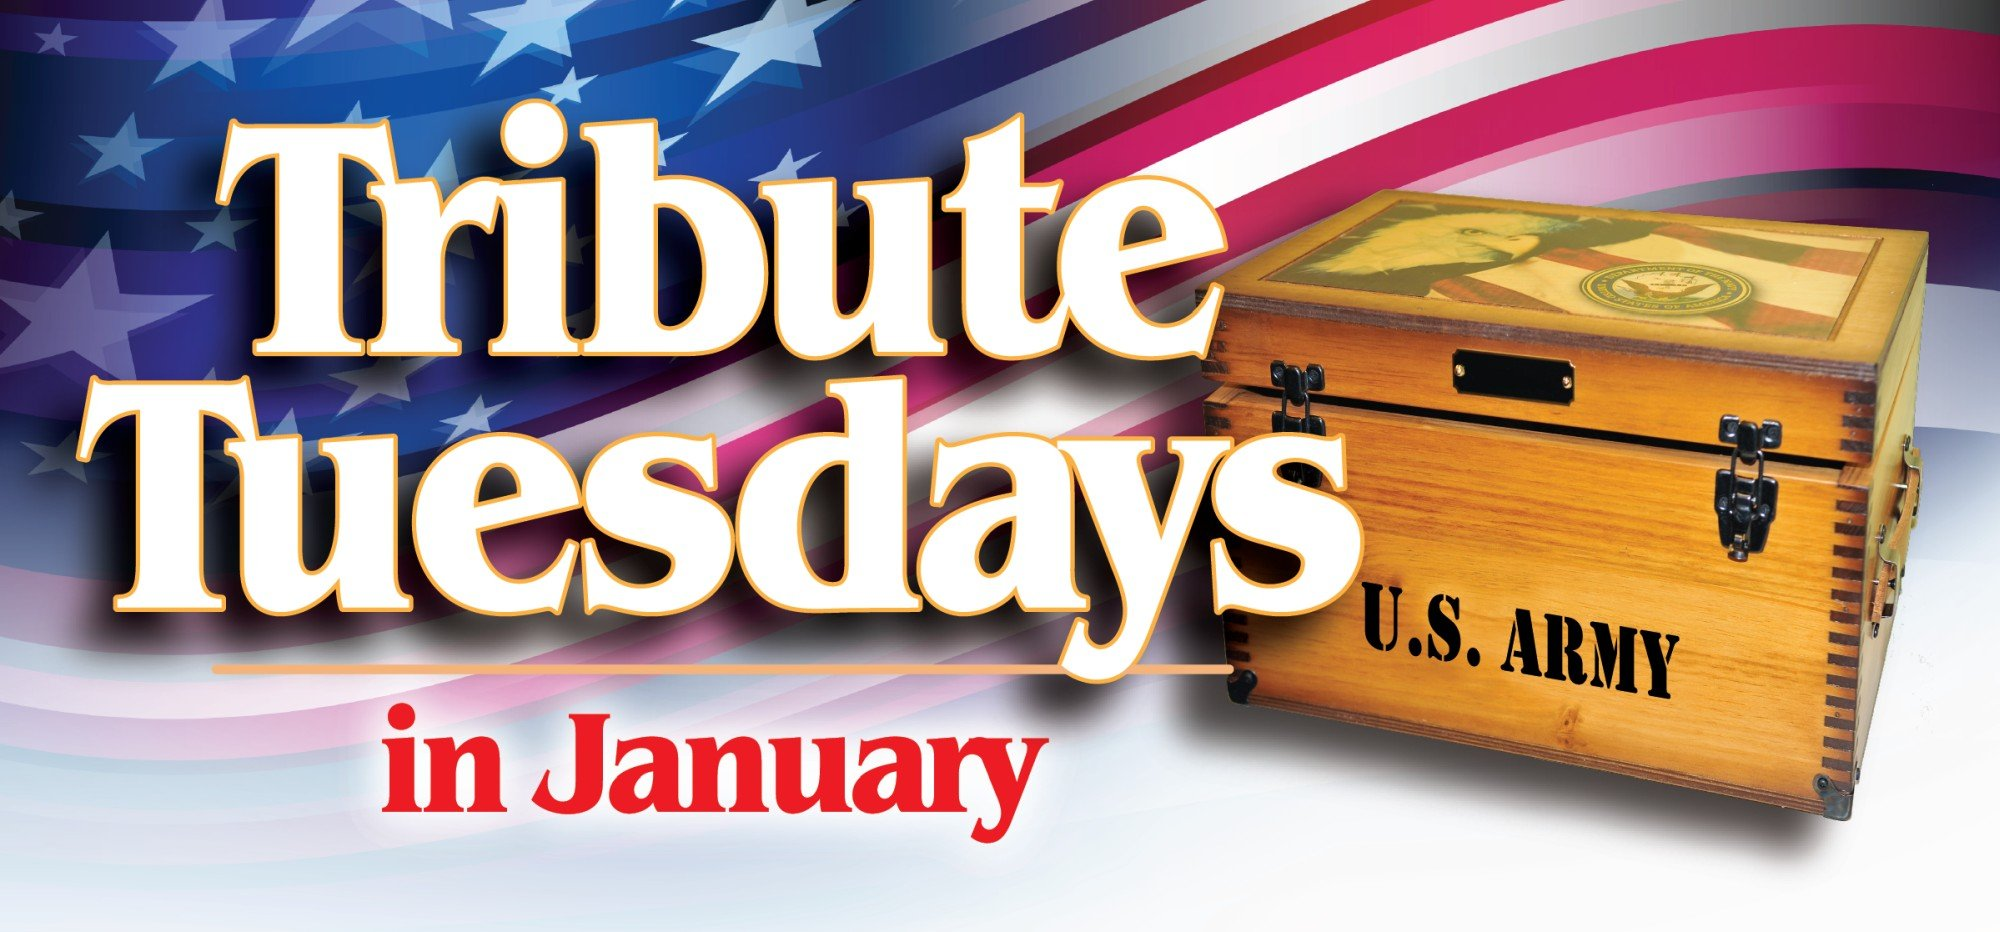 Web Header Promotion-January Tribute Tuesdays